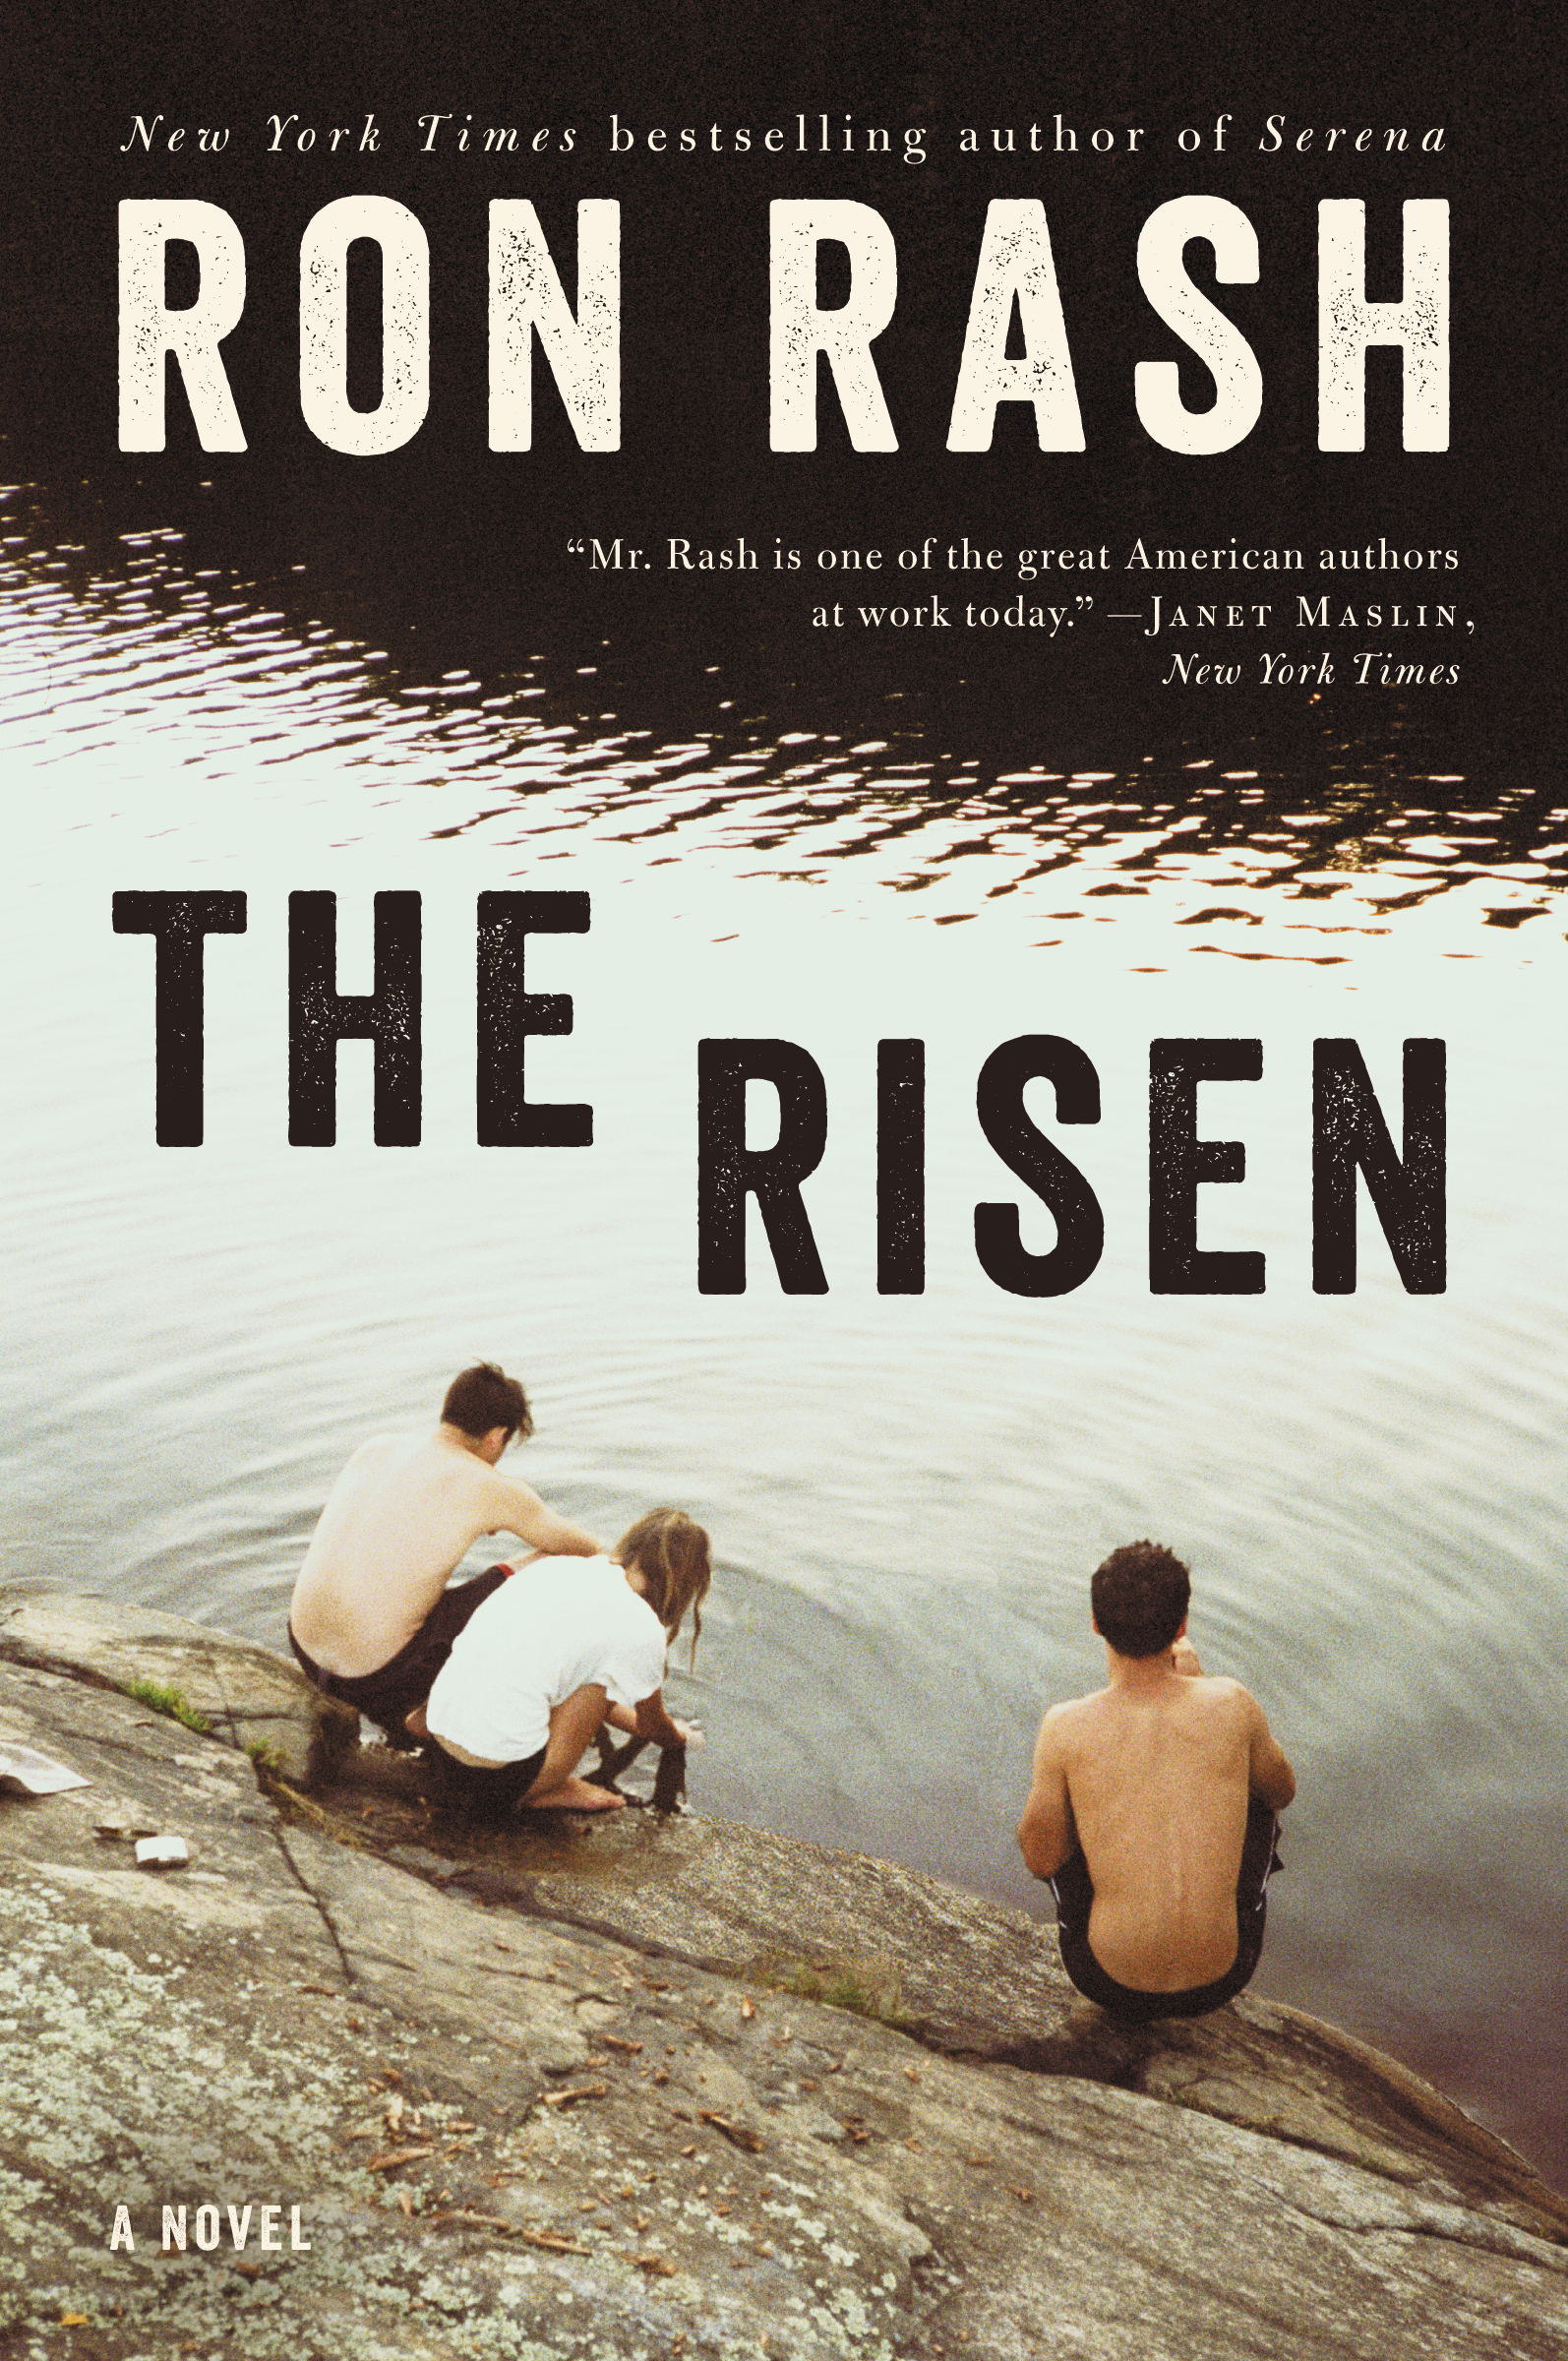 New York Times  bestselling author Ron Rash demonstrates his  superb narrative skills in this suspenseful and evocative tale of two  brothers whose lives are altered irrevocably by the events of one  long-ago summer, one bewitching young woman—and the secrets that could  destroy their lives.